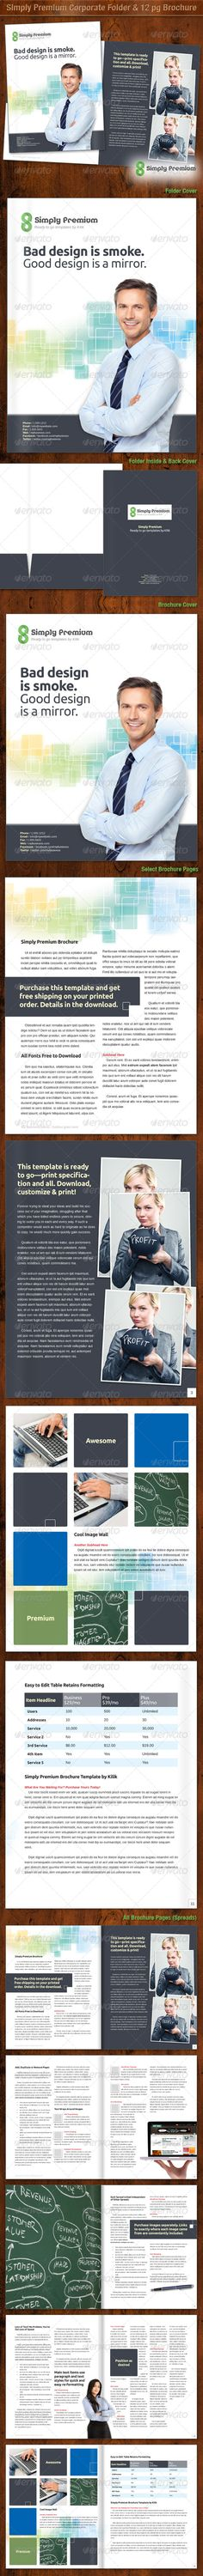 Simply Premium Corporate Folder & 12 page Brochure by Kilik Simply Premium templates are the new elite standard in high-end business material. They are designed with the true business profes Design Brochure, Corporate Brochure, Brochure Template, Javascript Cheat Sheet, Layout, Catalogue, Print Templates, The Help, Presentation